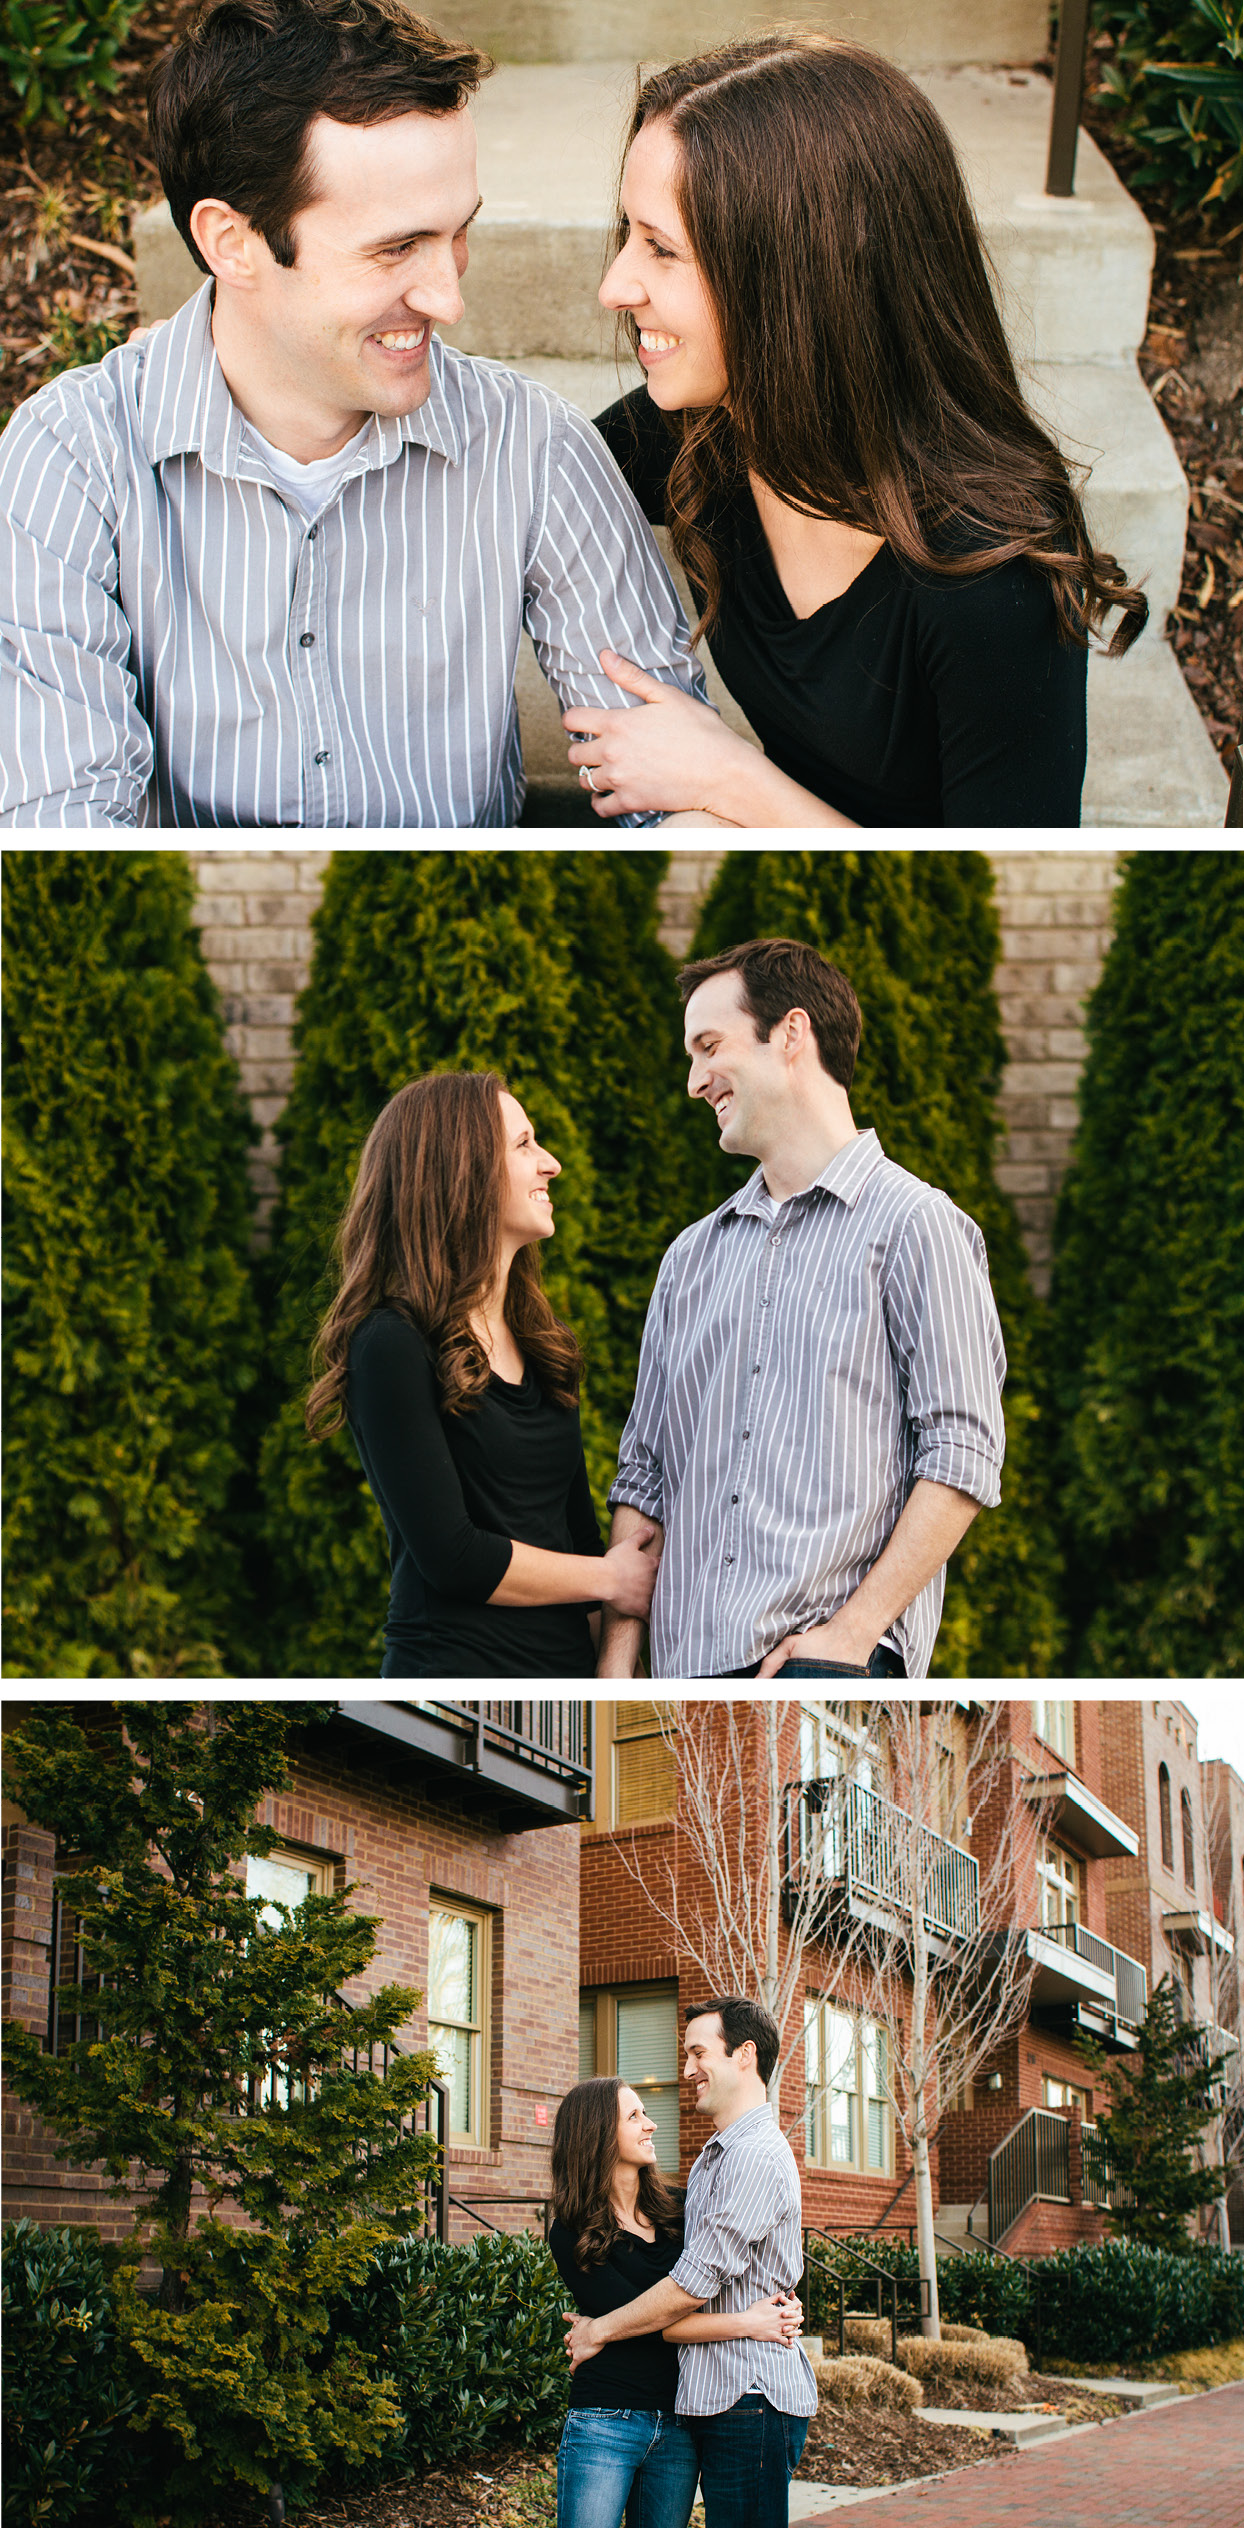 CK-Photo-Nashville-engagement-photographer-mh4.jpg